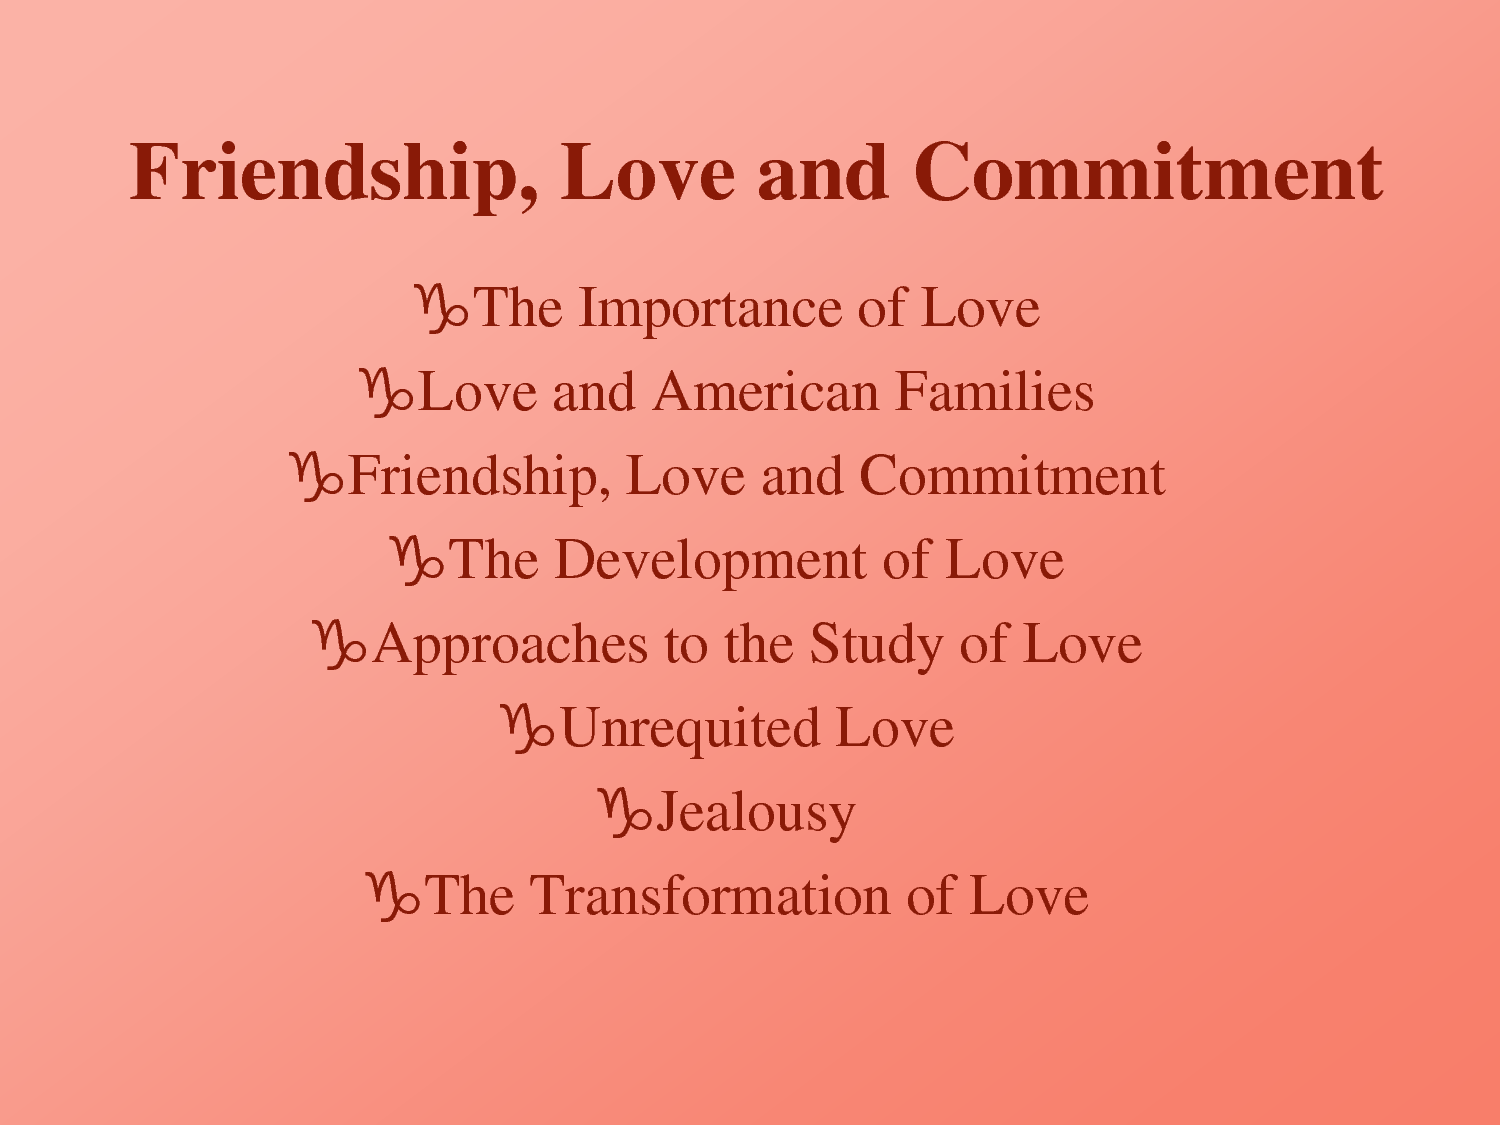 Quotes On Love And Marriage Quotes About Love And Marriage And Friendship Marriage Quotes